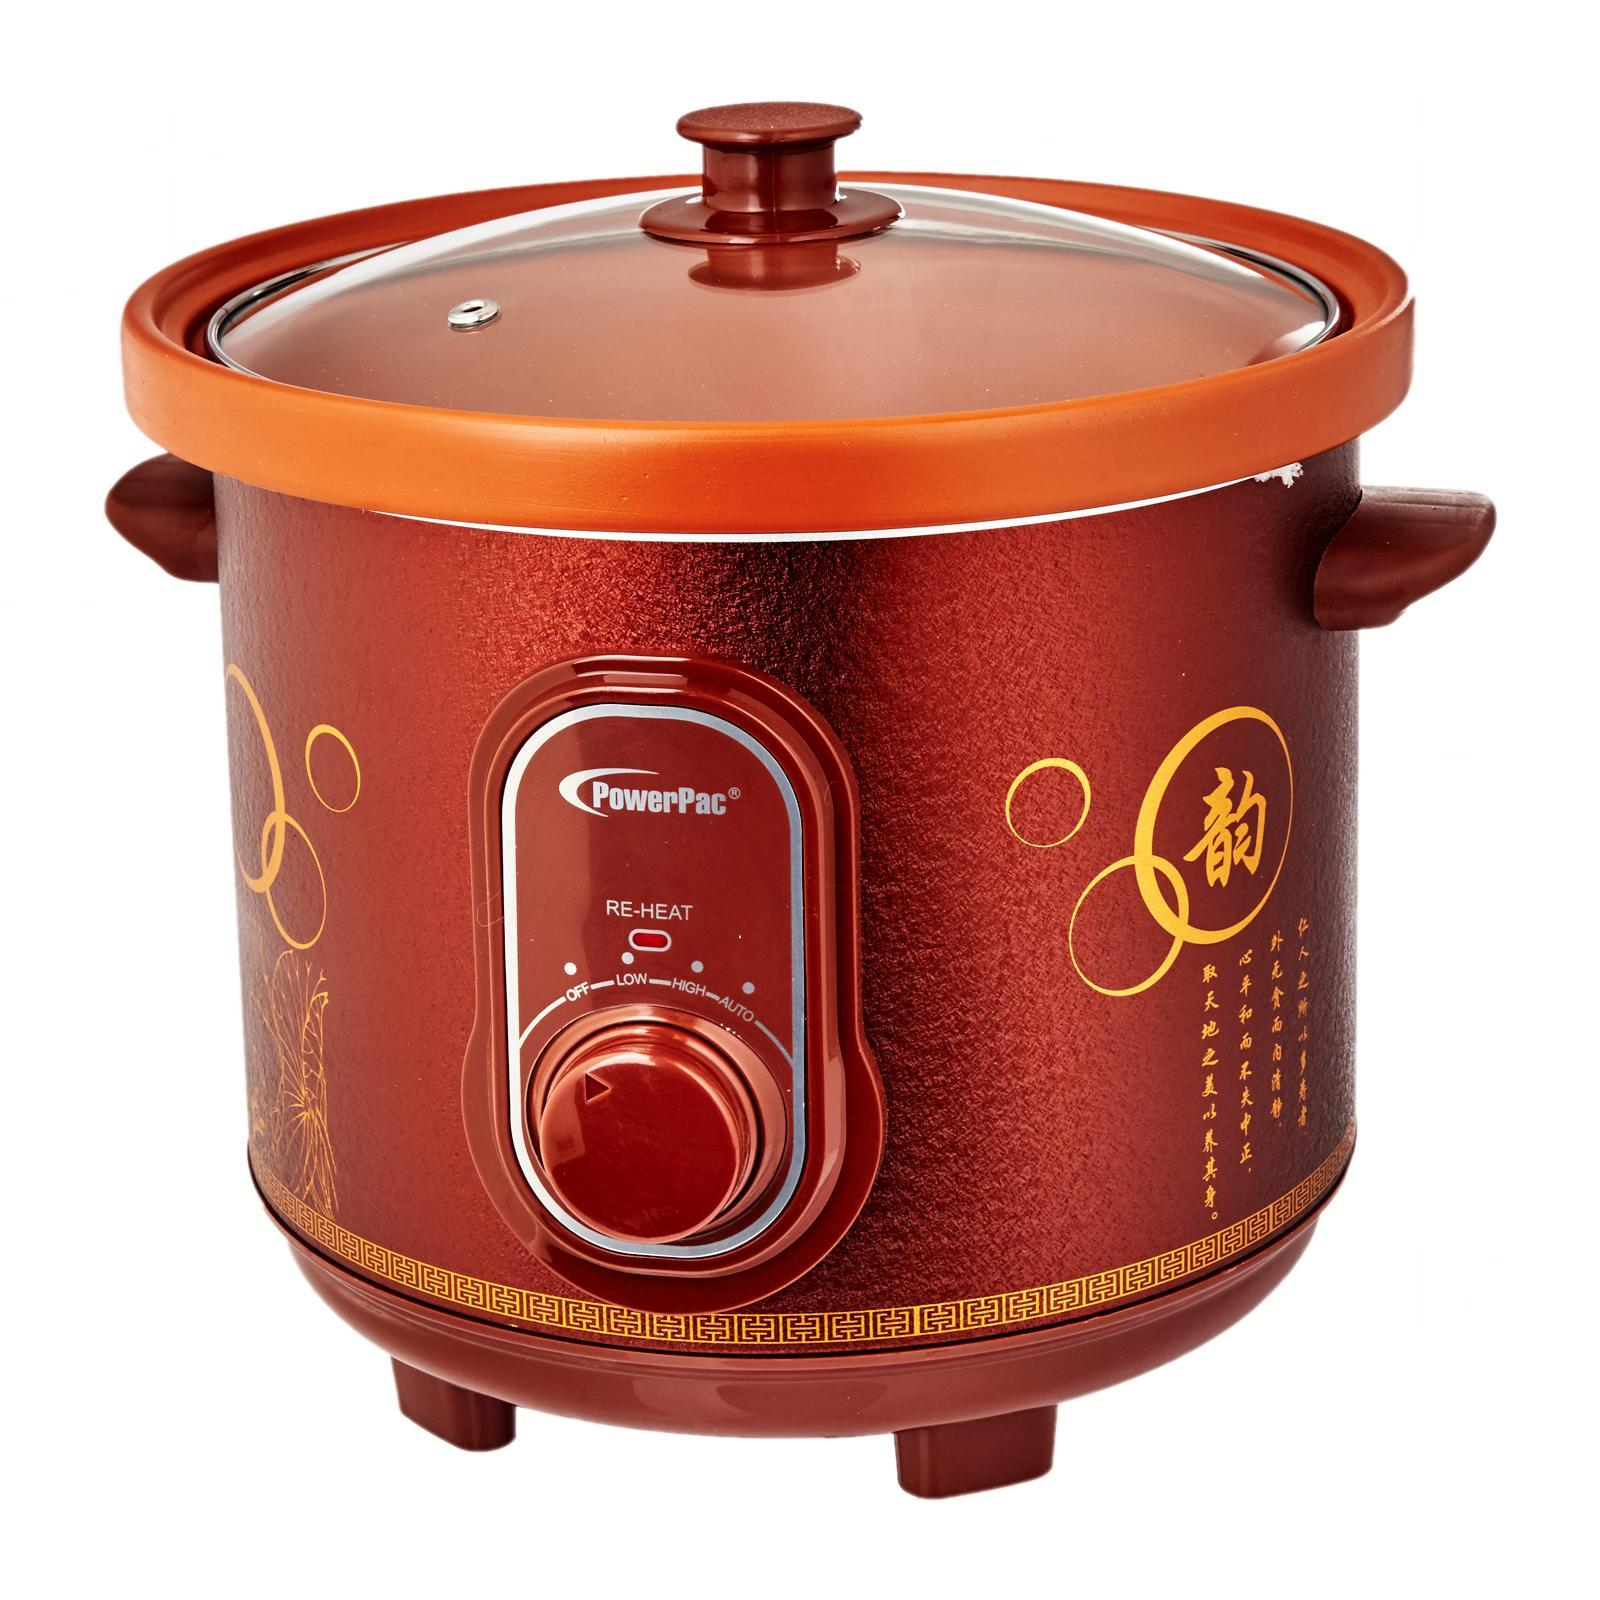 PowerPac 3.5L Slow Cooker With Ceramic Pot (Ppsc35)